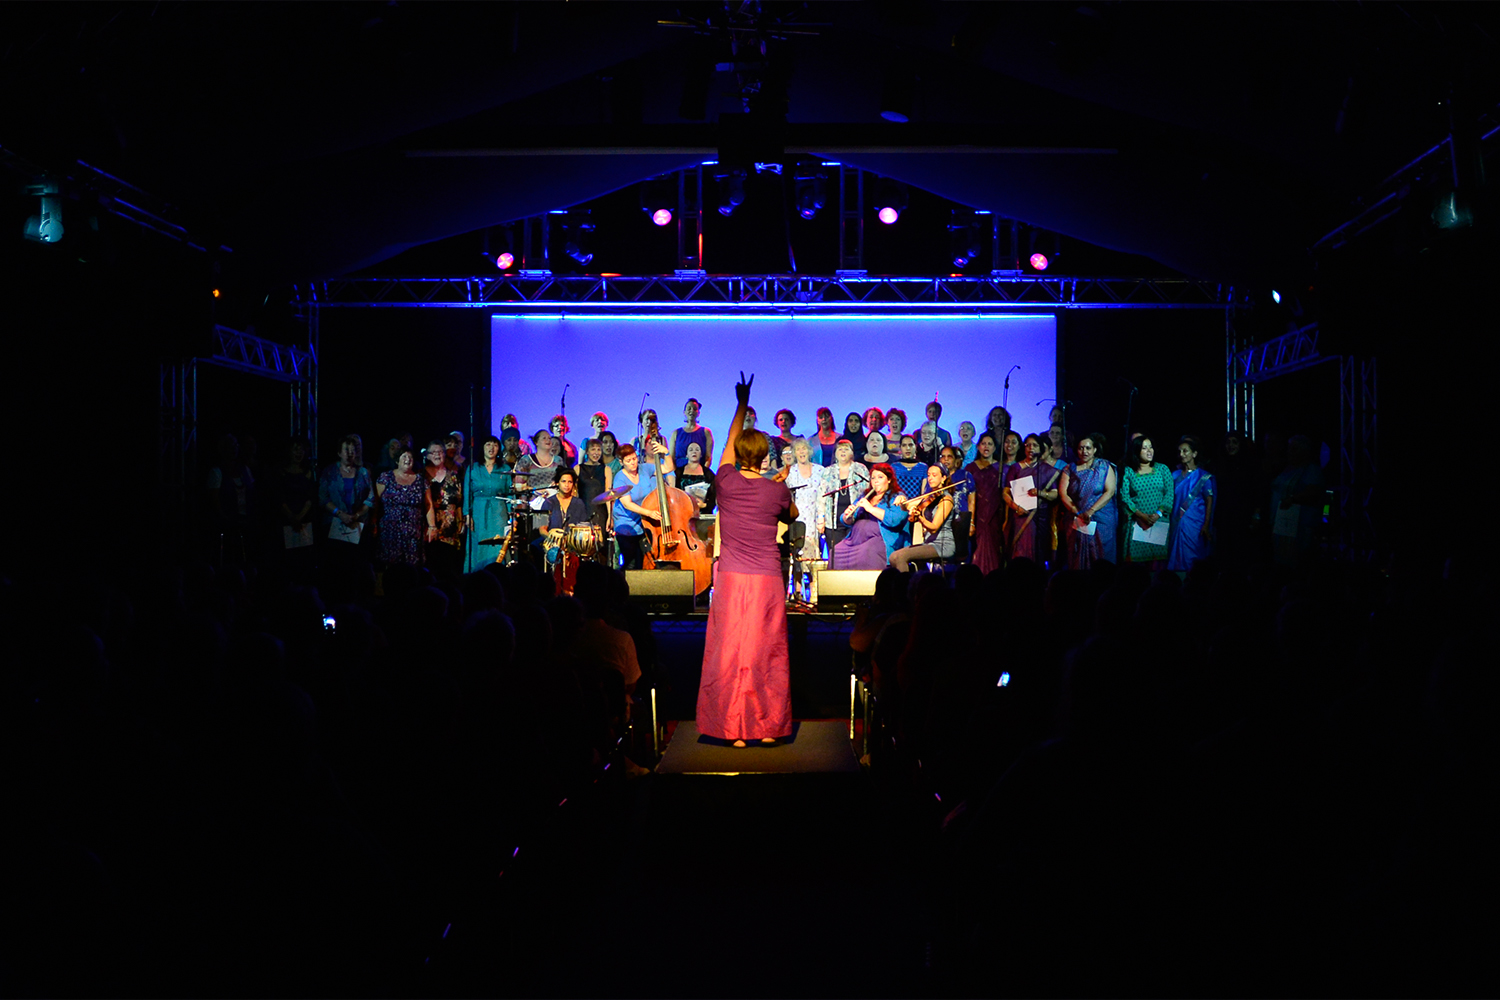 Sacred Sounds Women's Choir performance at the MIF13 Festival Pavilion Photo: Robert Martin for Manchester International Festival